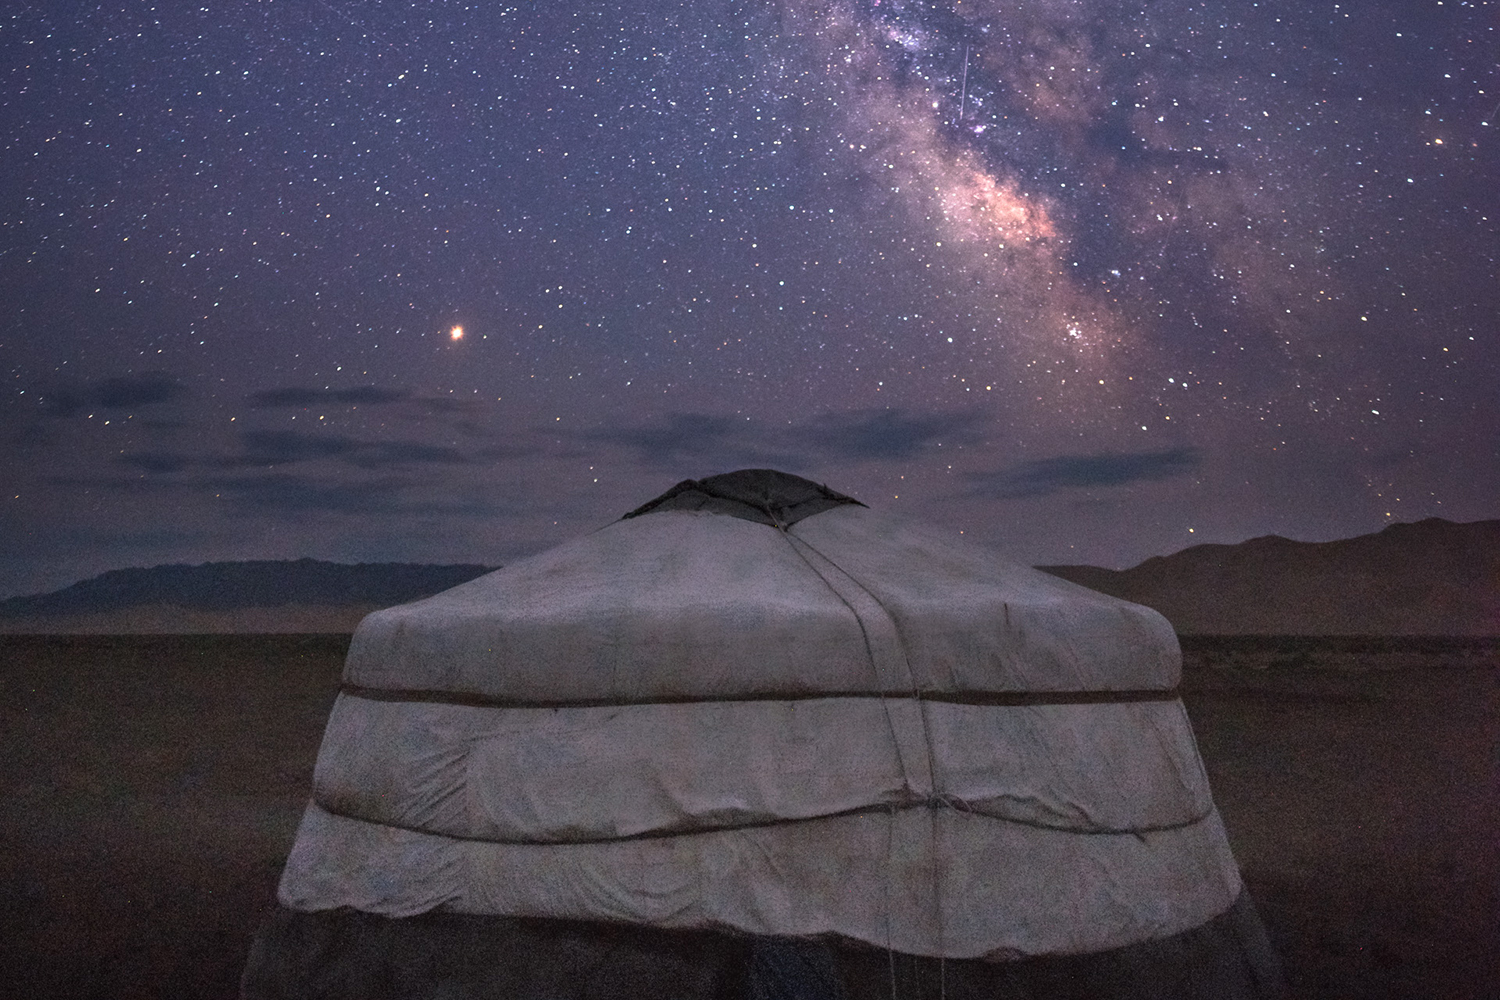 tent under a starry sky